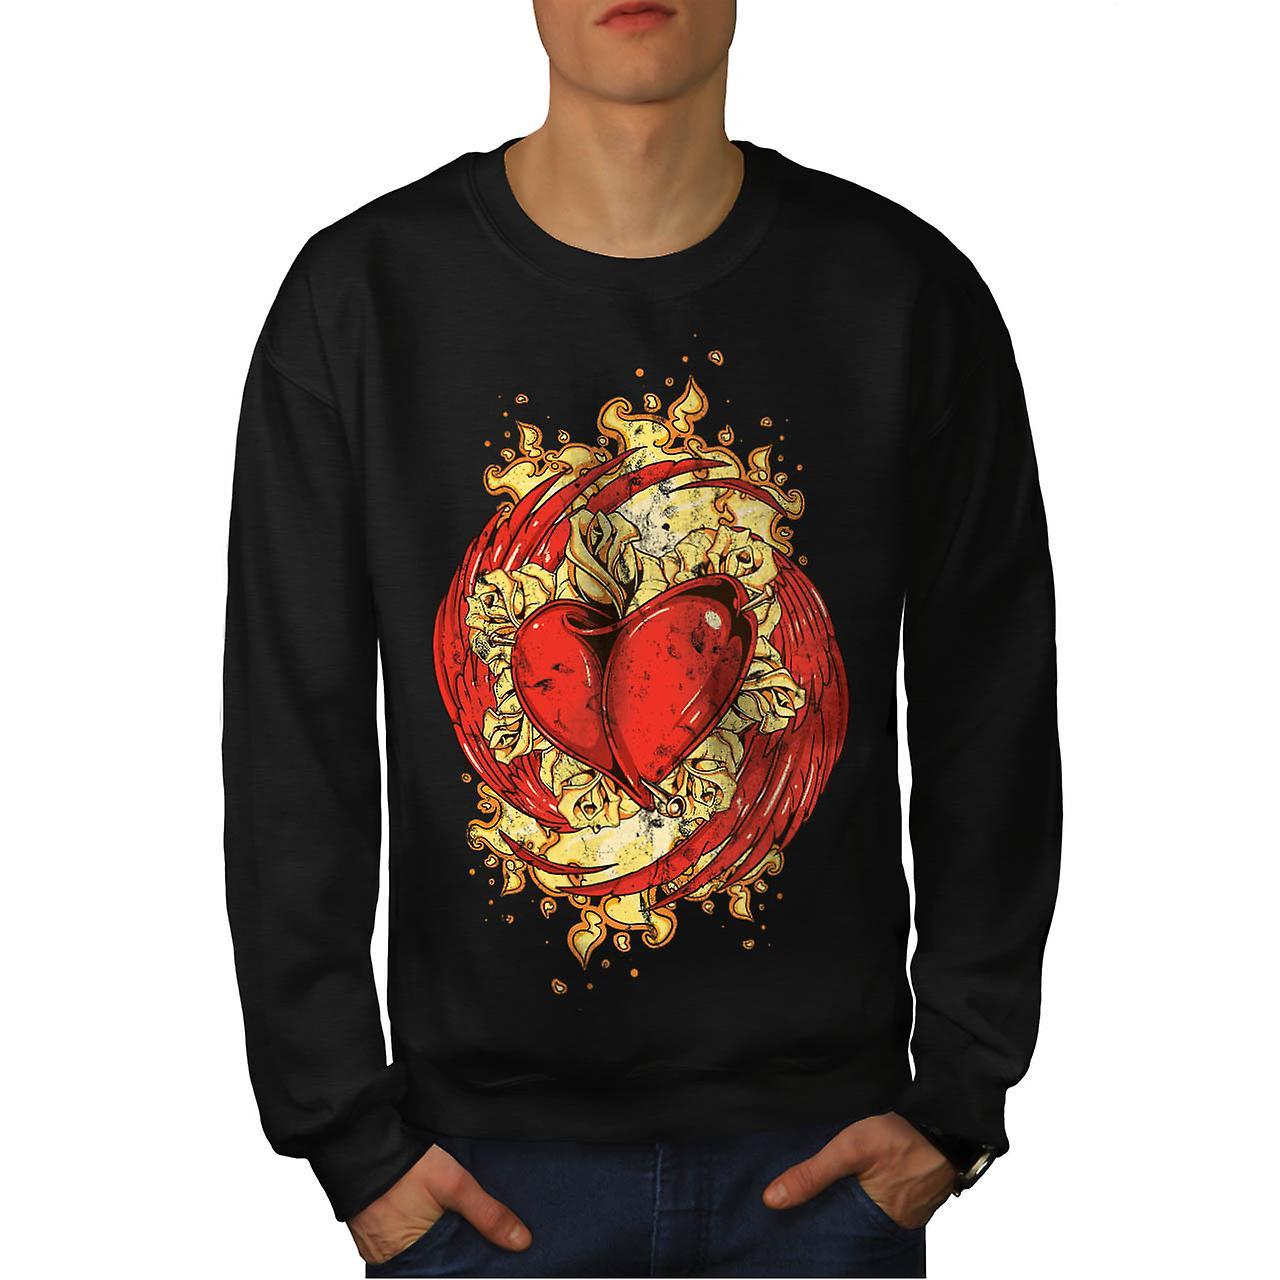 Aime les battements de coeur aile Lust orgue hommes Black Sweatshirt | Wellcoda